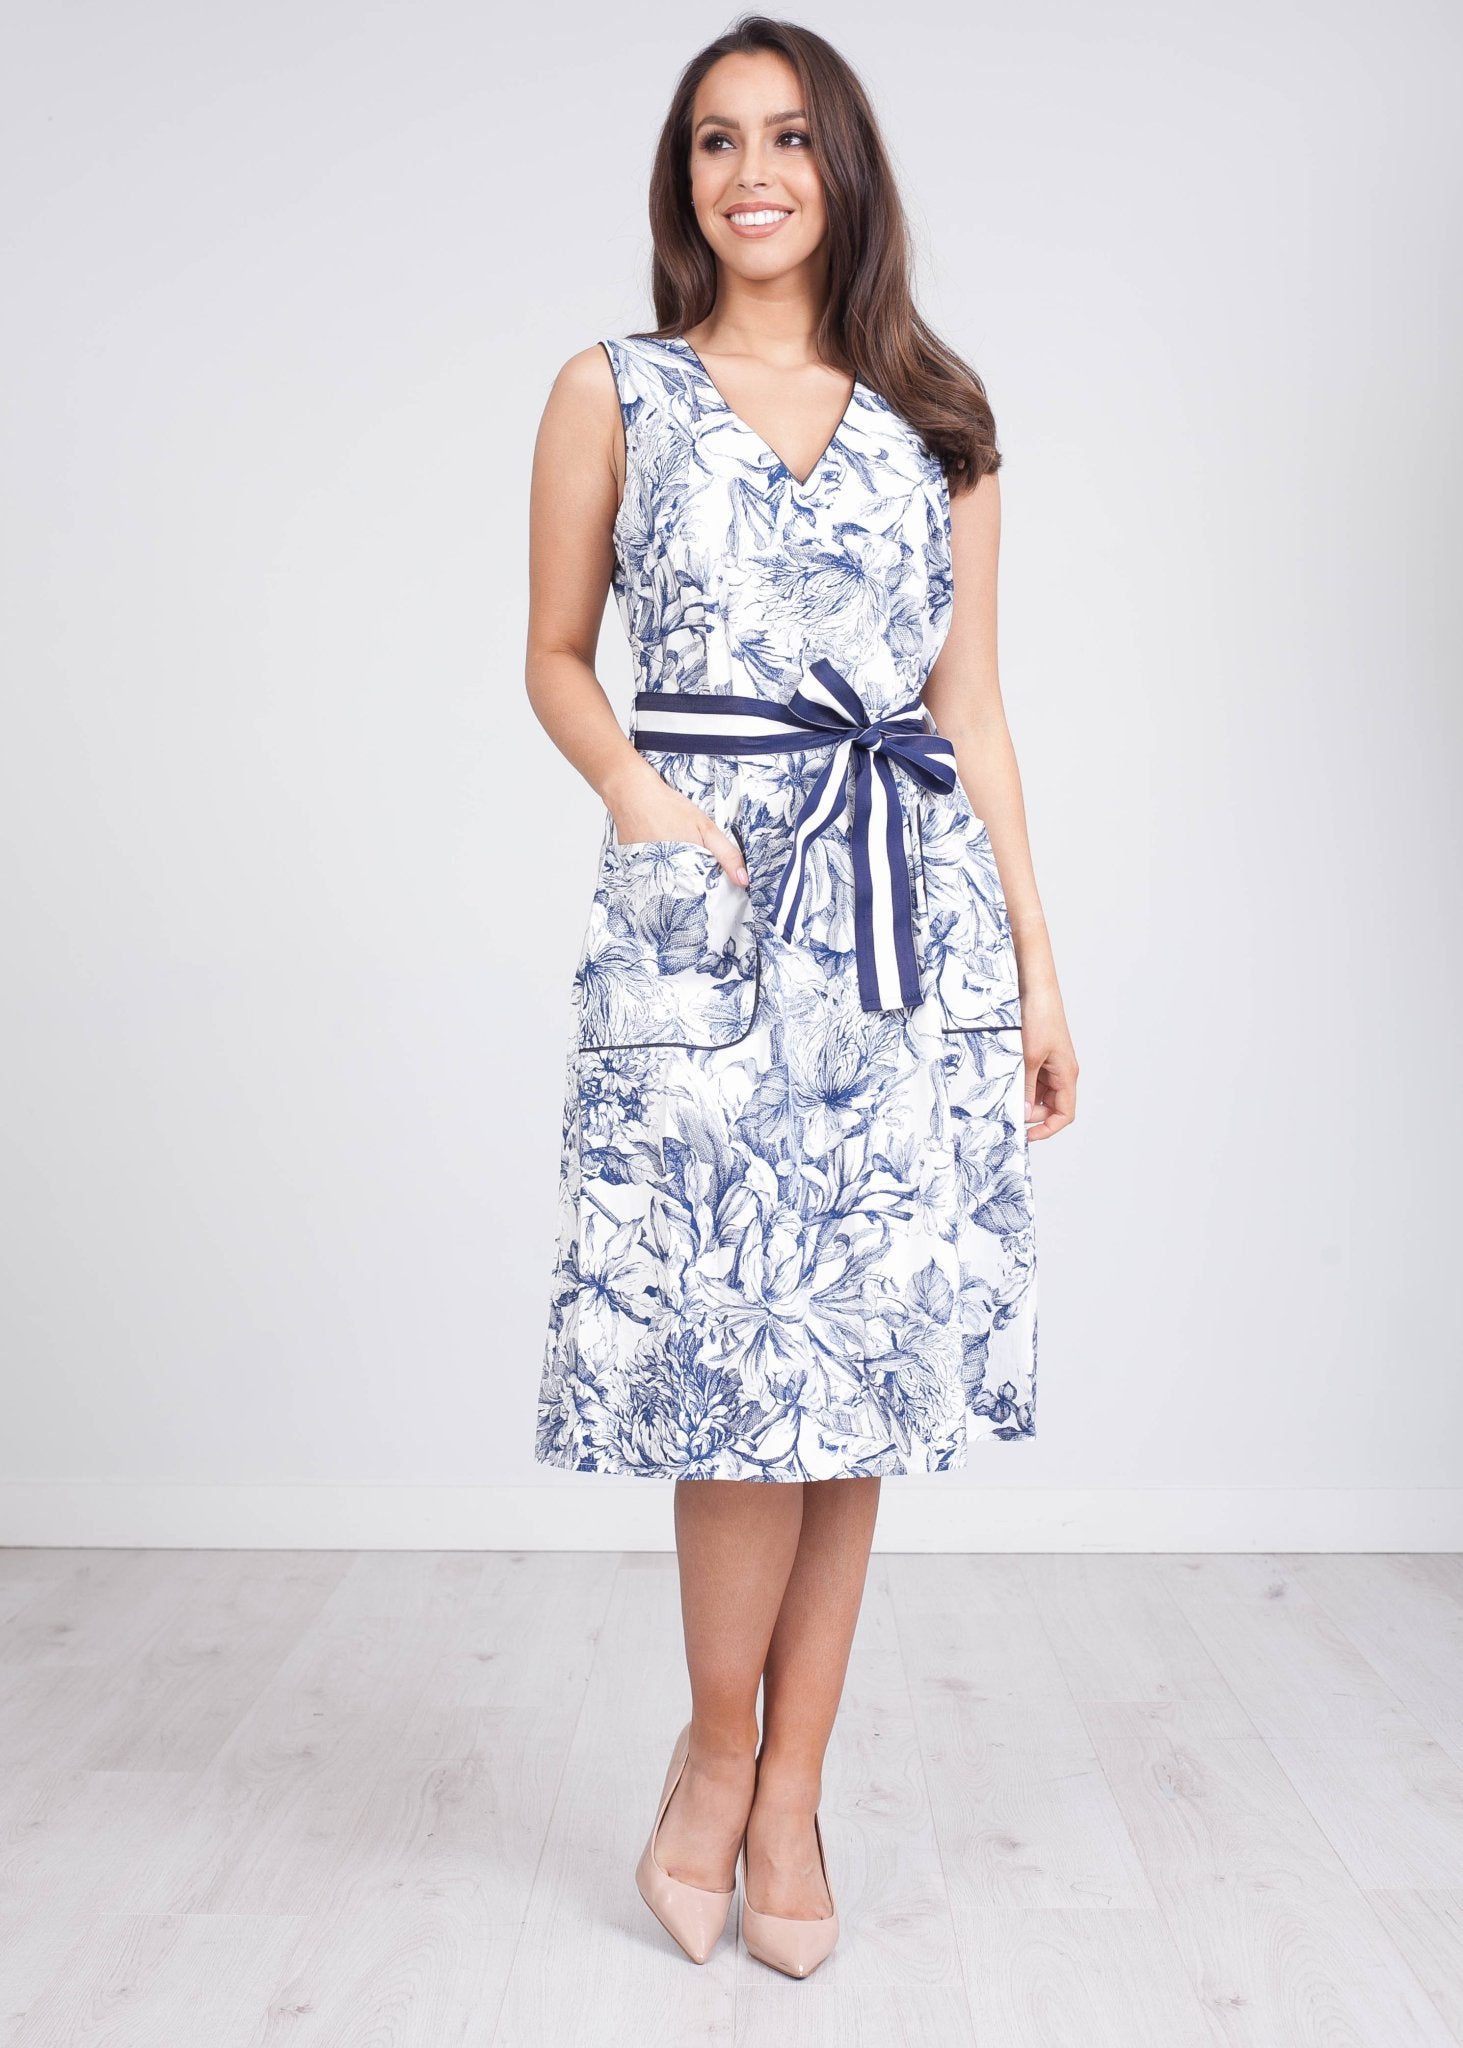 Rita Blue Print Dress - The Walk in Wardrobe